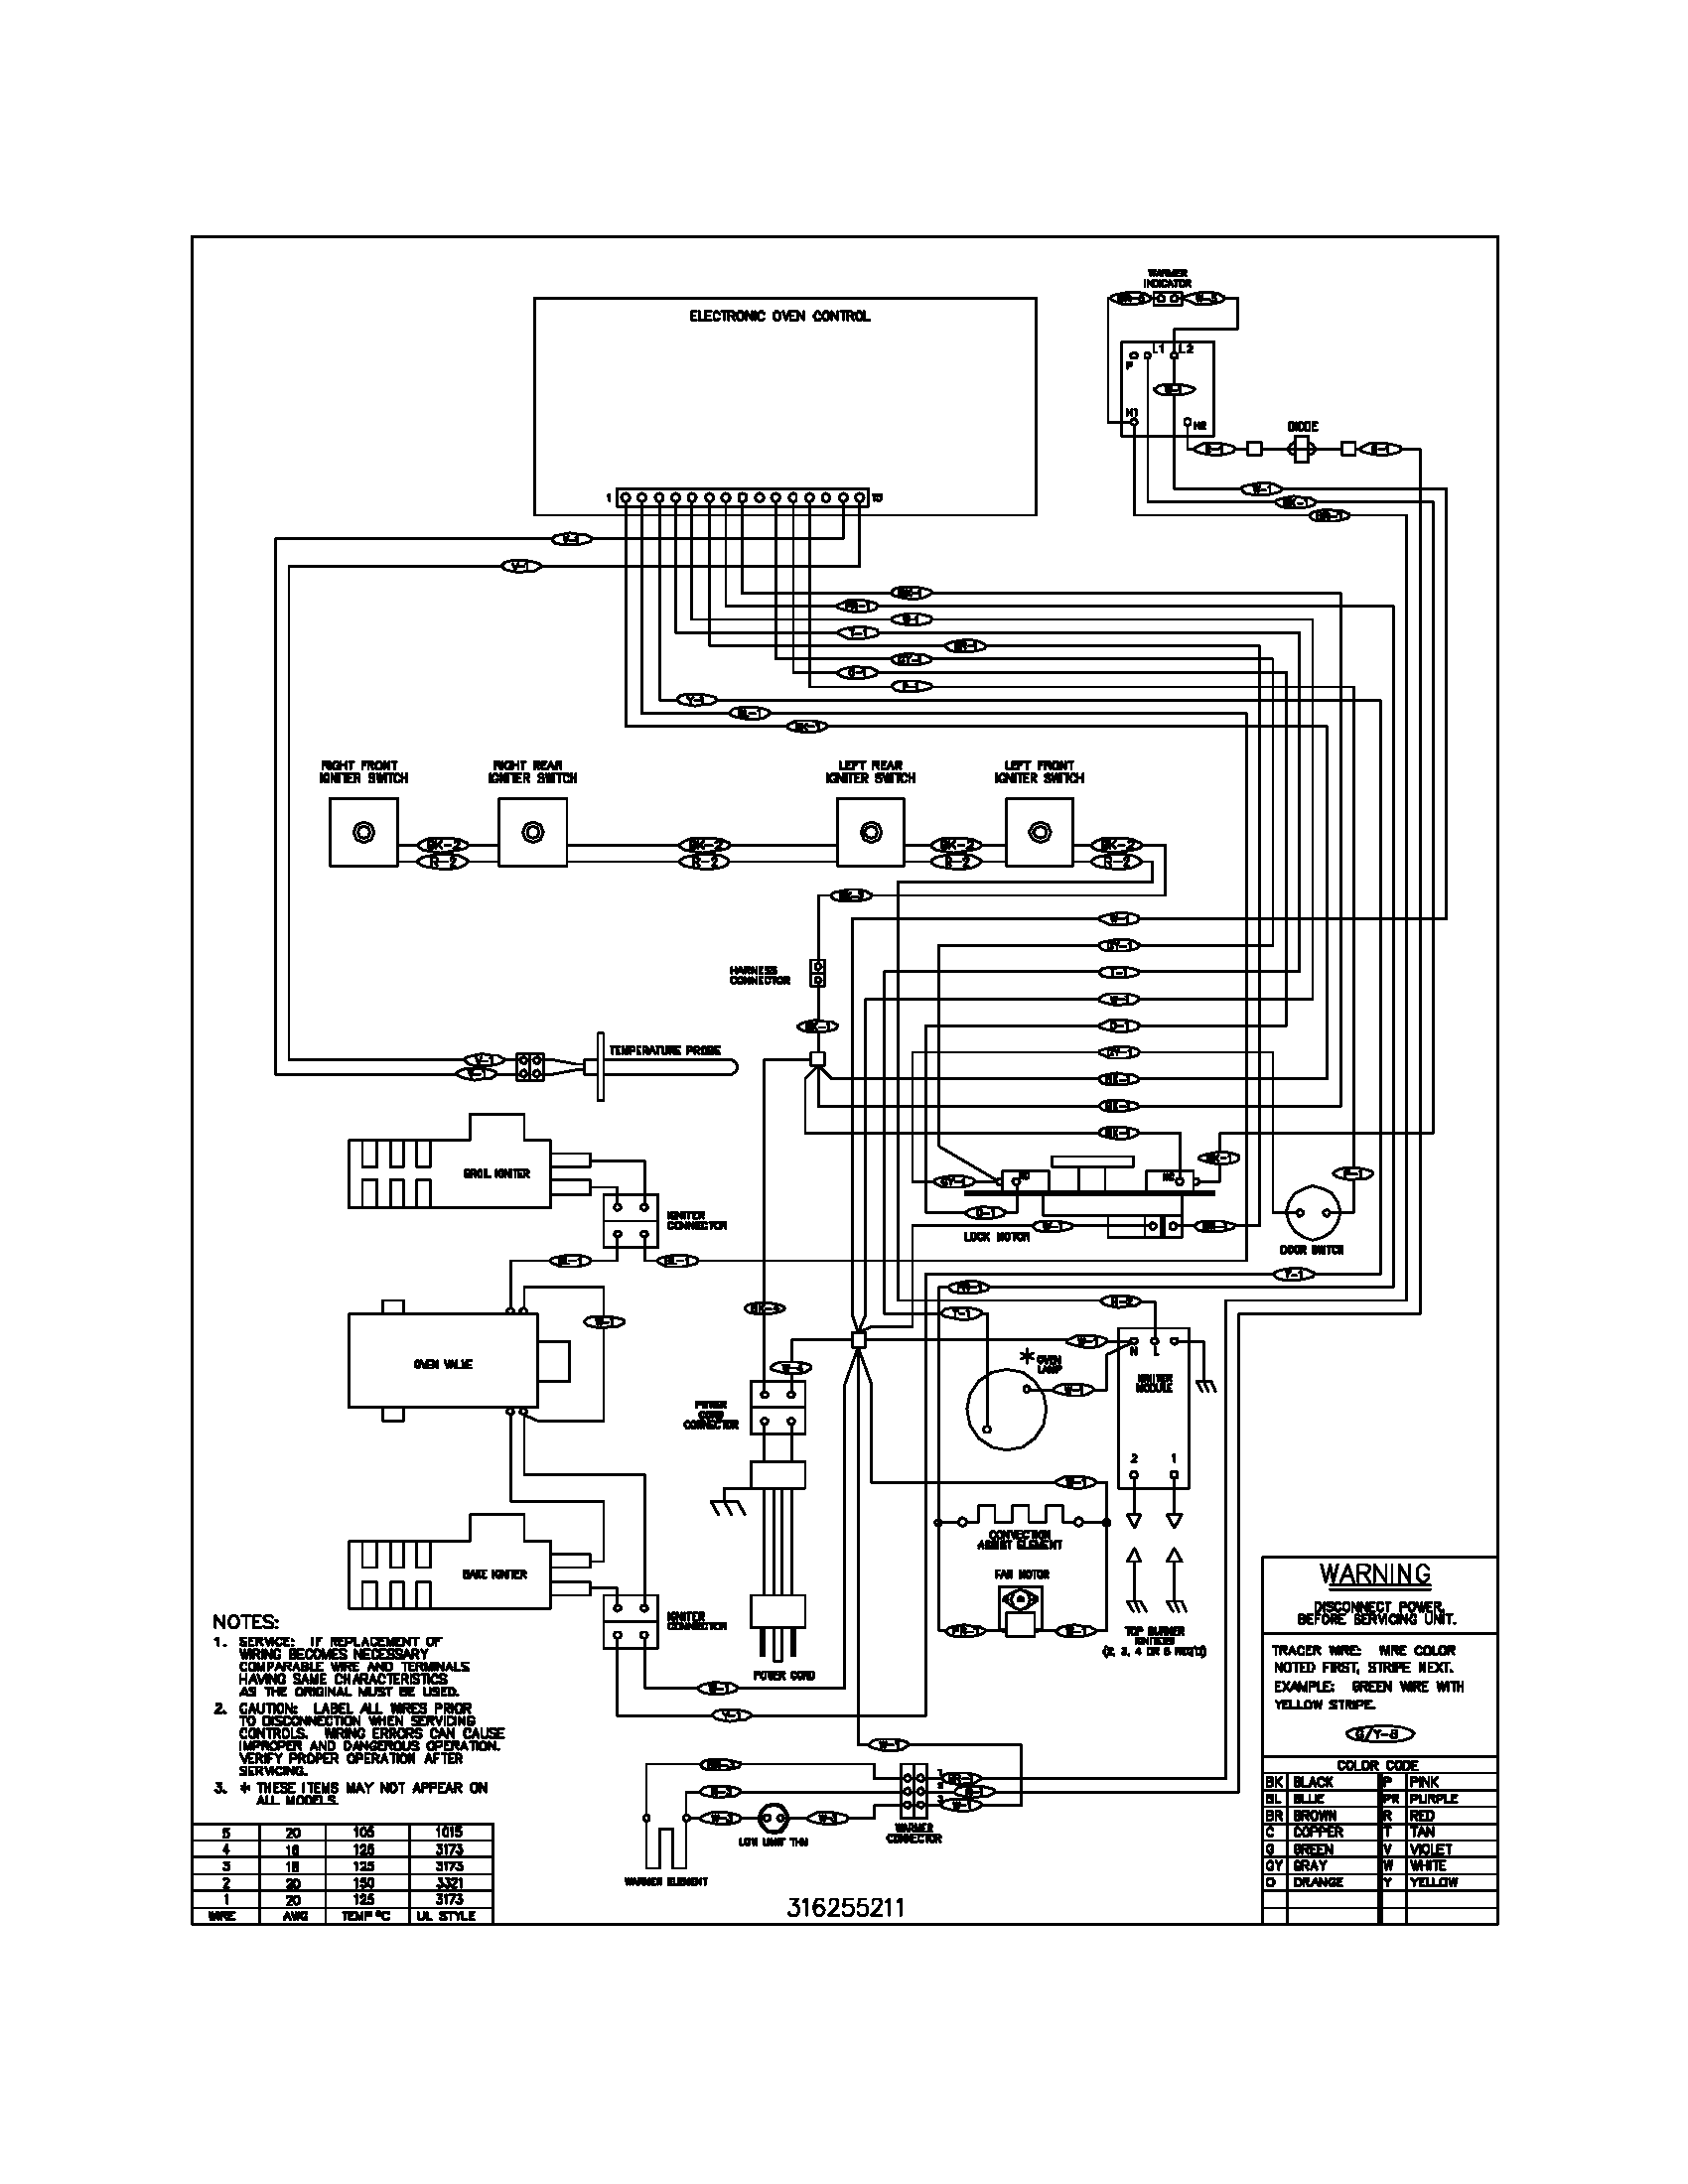 wiring diagram parts frigidaire plgf389ccc gas range timer stove clocks and appliance gas guard 2 wiring diagram at crackthecode.co